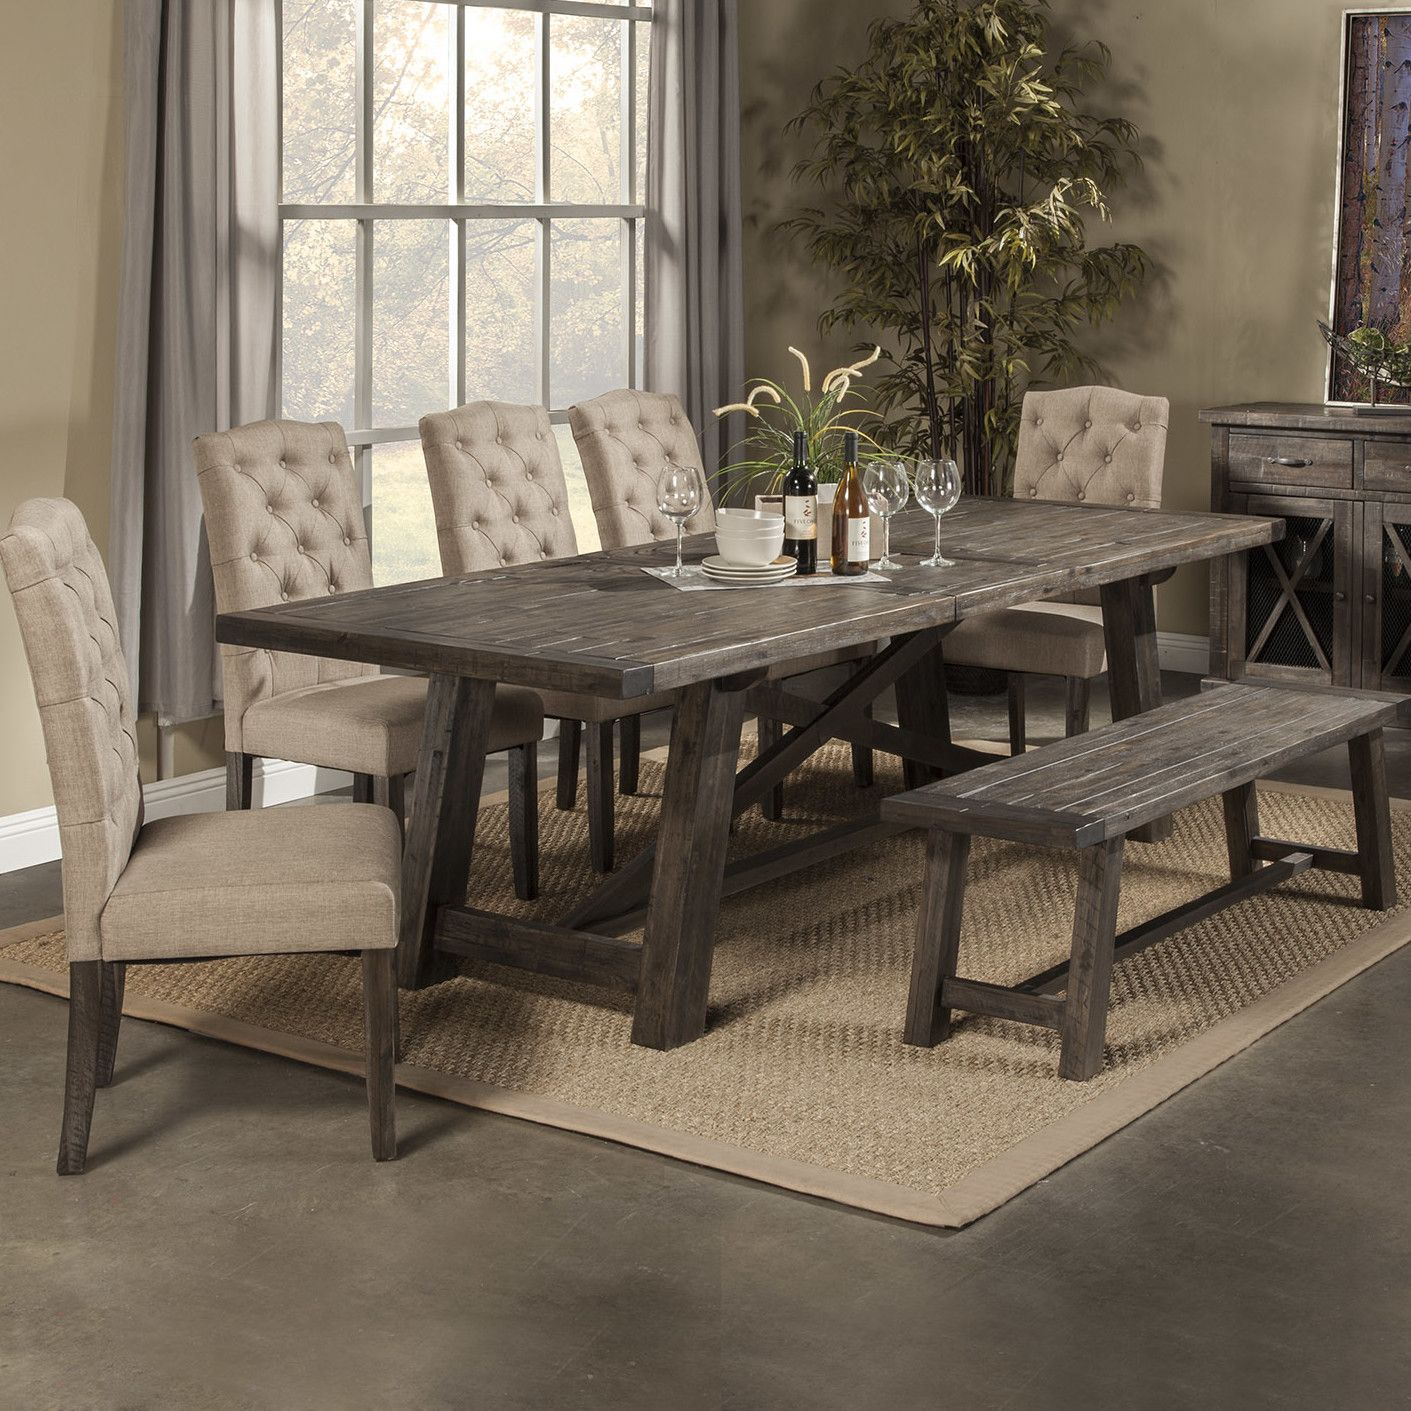 Dining Room Sets Leather Chairs Pleasing Stylish Dining Sets Perfect For Growing Families  Dining Sets 2018